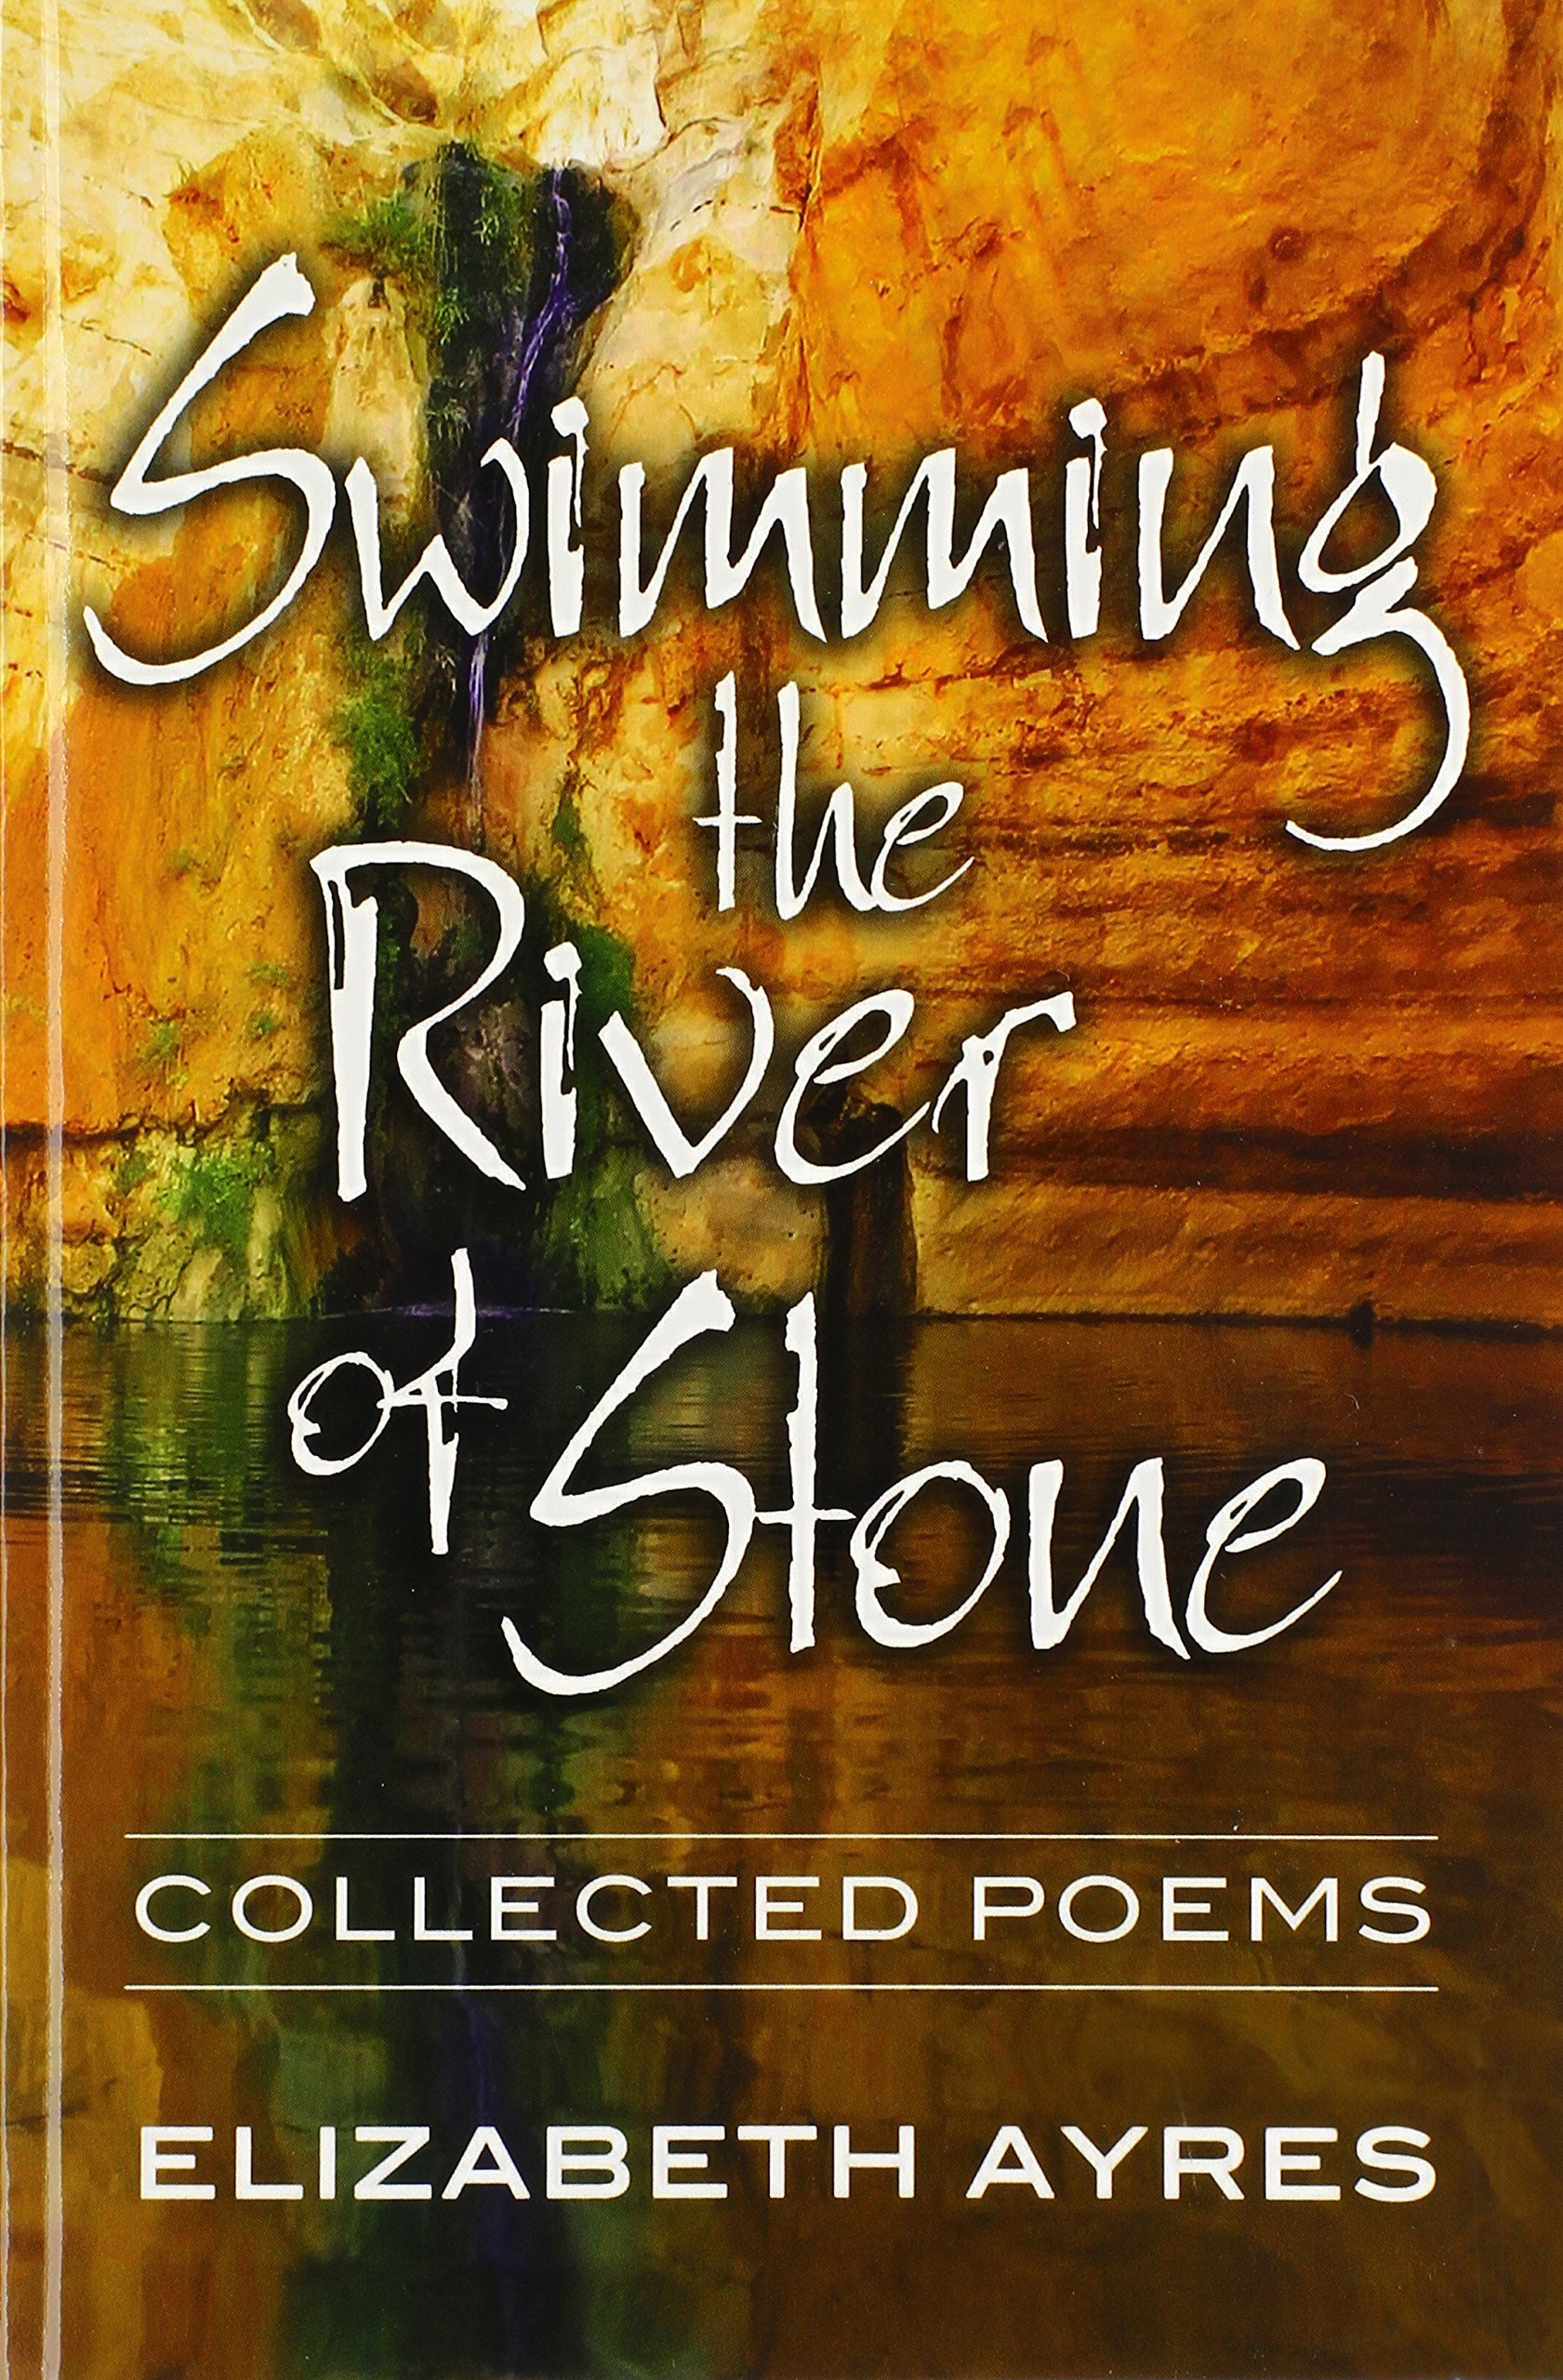 Swimming the River of Stone: Collected Poems